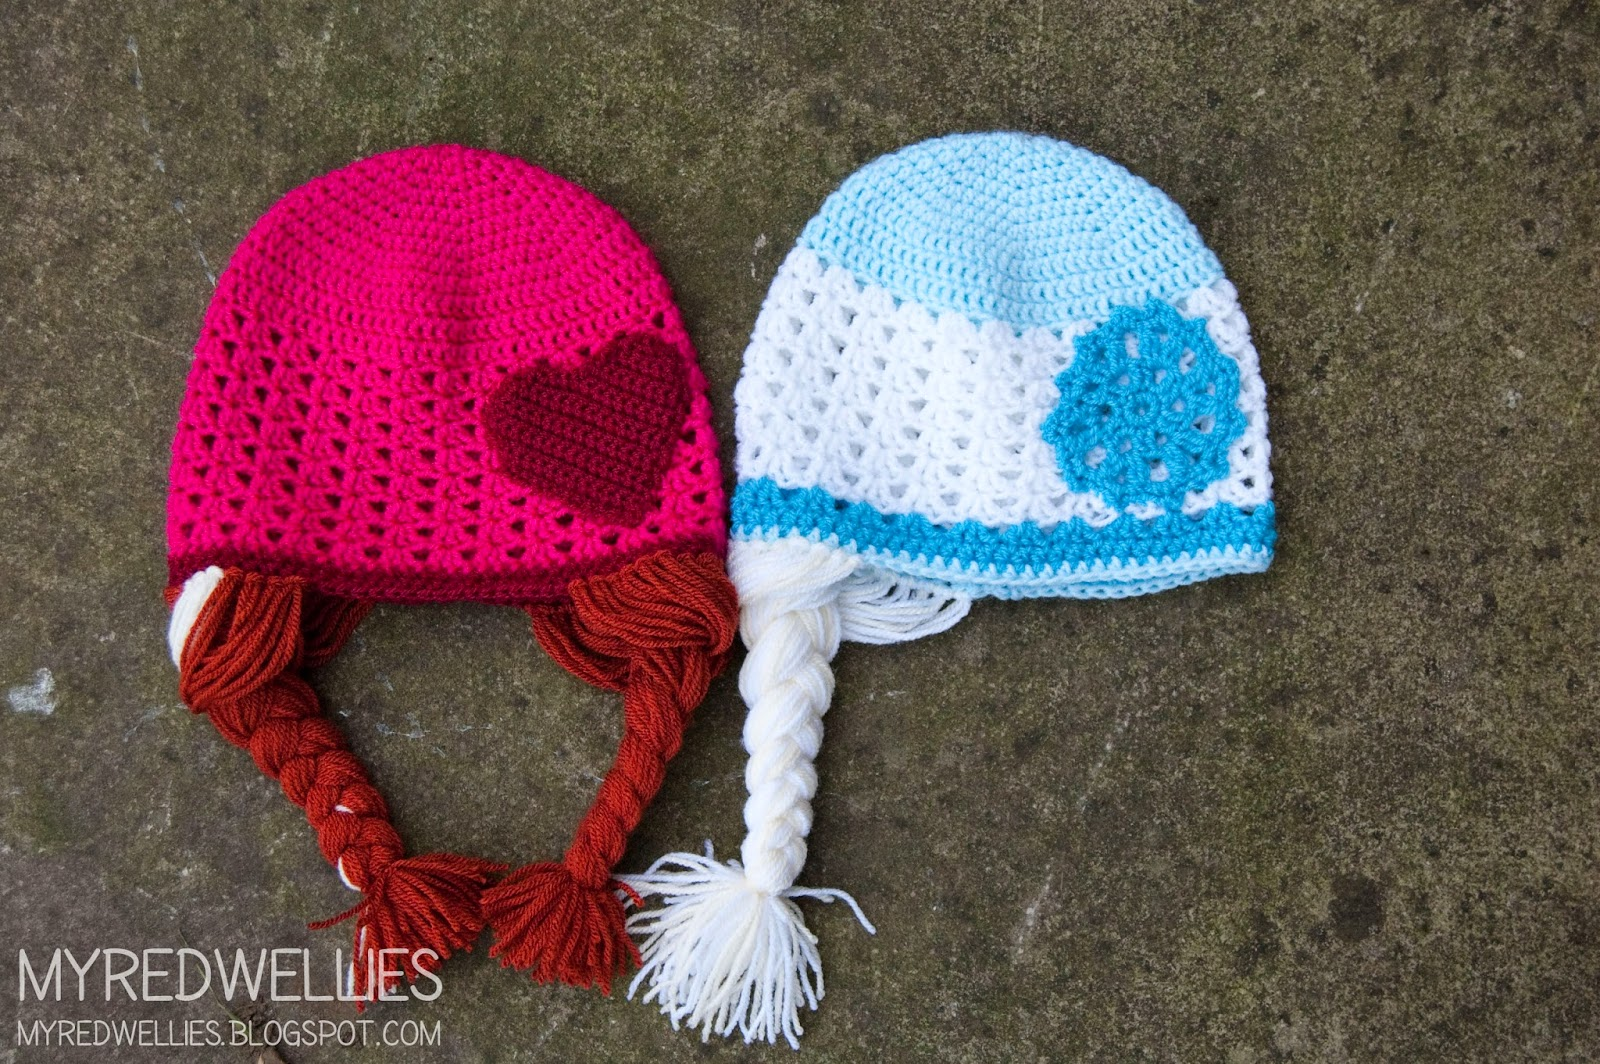 My Red Wellies: Anna & Elsa crochet hats - A free Crochet ...